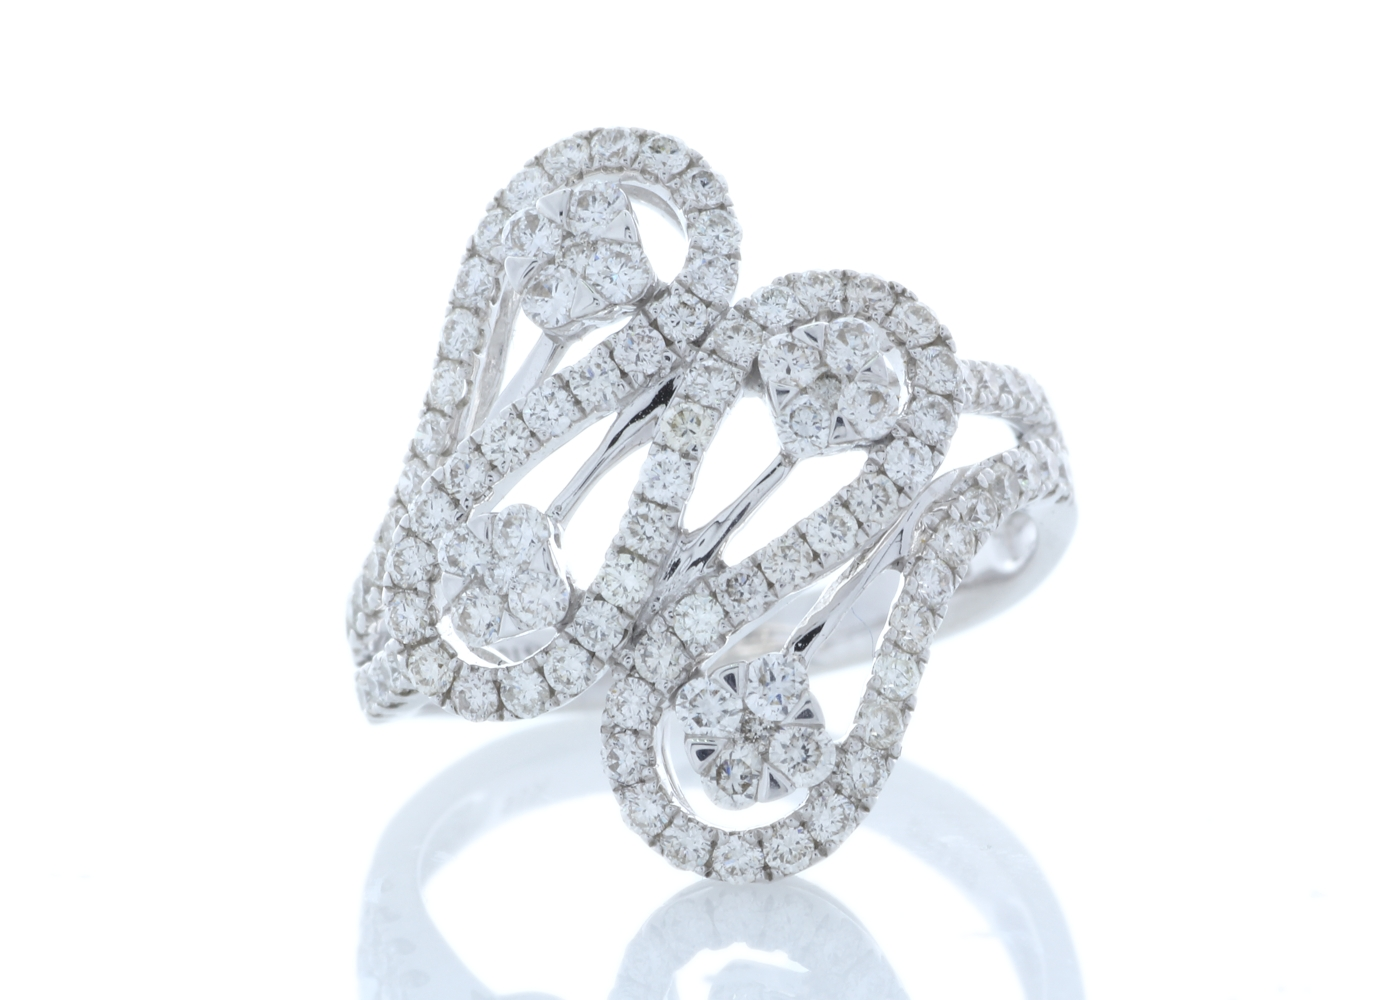 18ct White Gold Fancy Cluster Diamond Ring 1.15 Carats